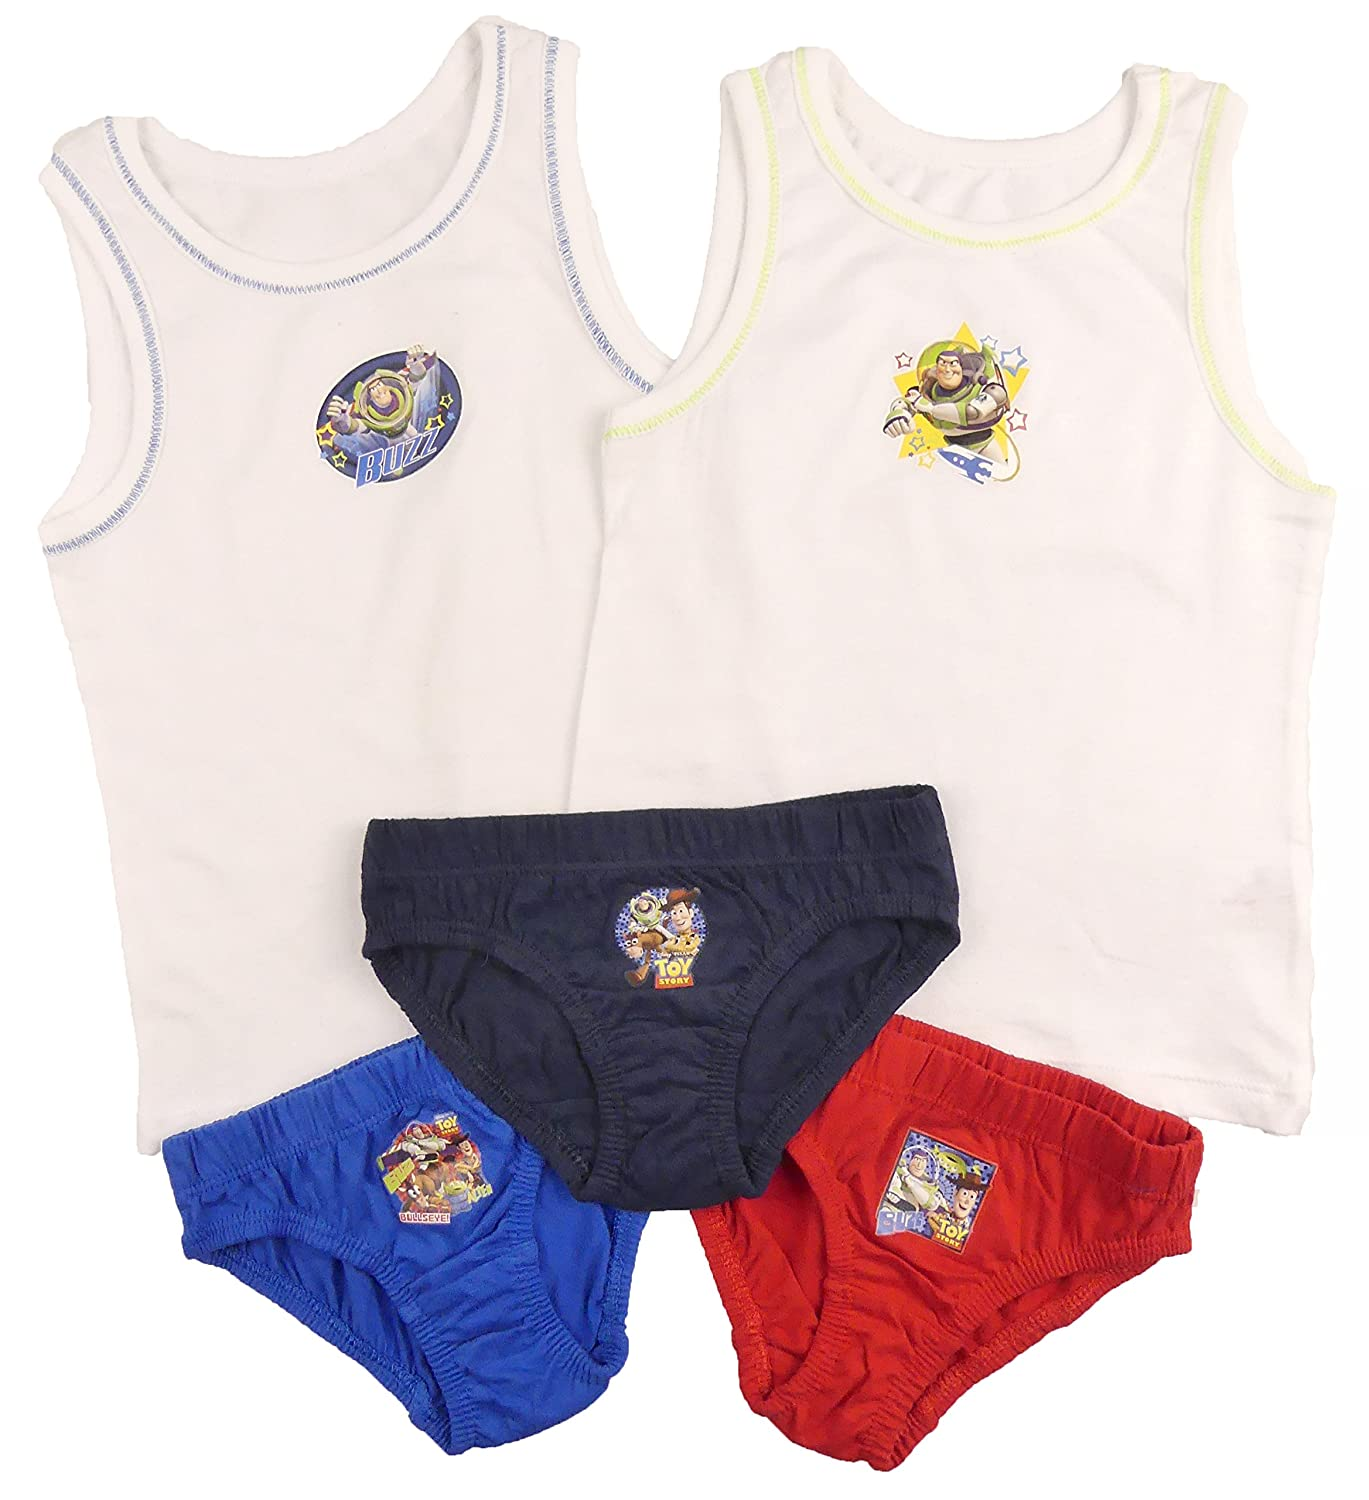 Boys Toy Story Pants and Vests Sets